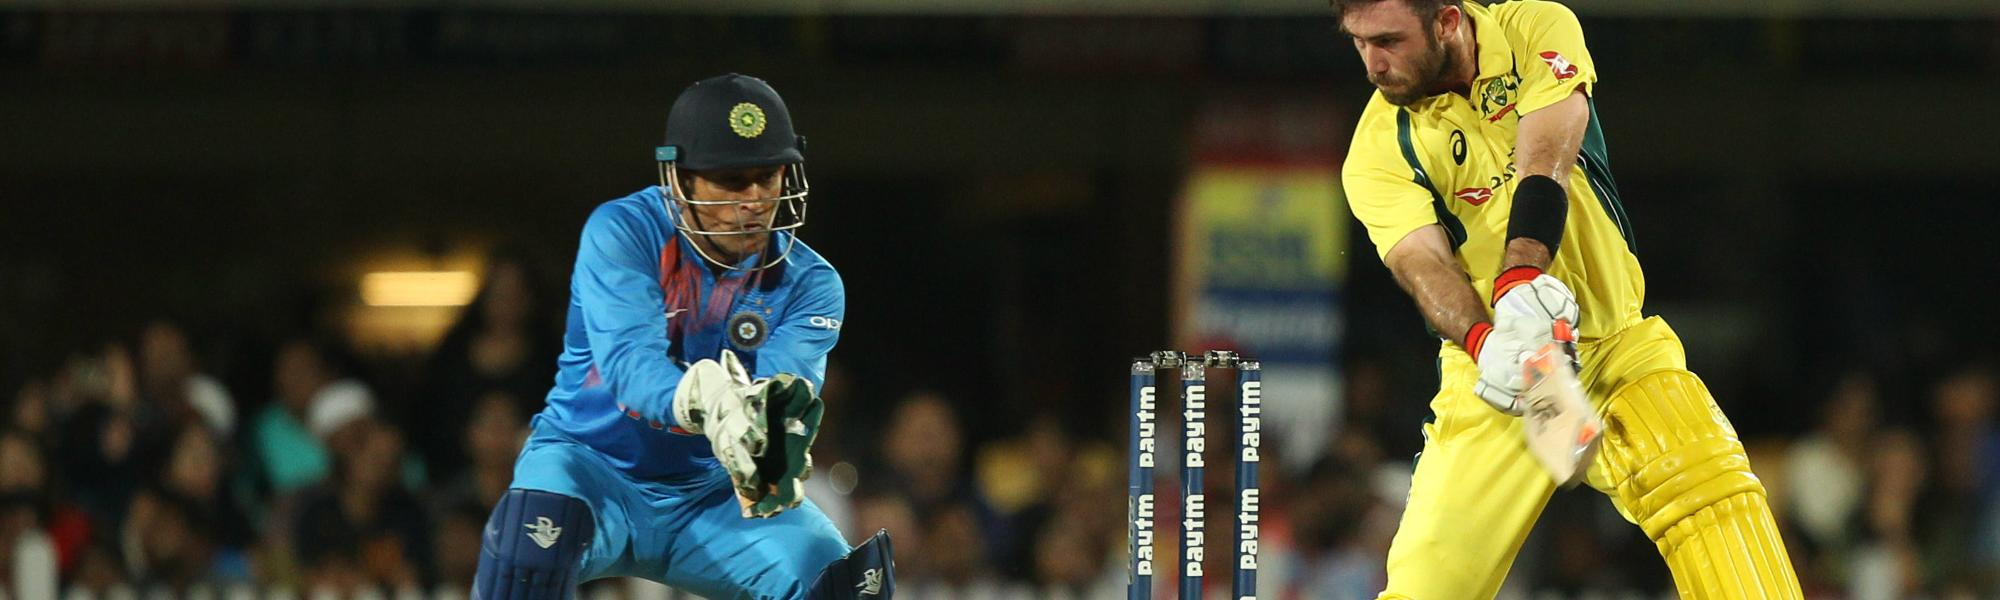 Glenn Maxwell's miserable Indian tour continued with him lobbing a delivery straight to Hardik Pandya off Yuzvendra Chahal.